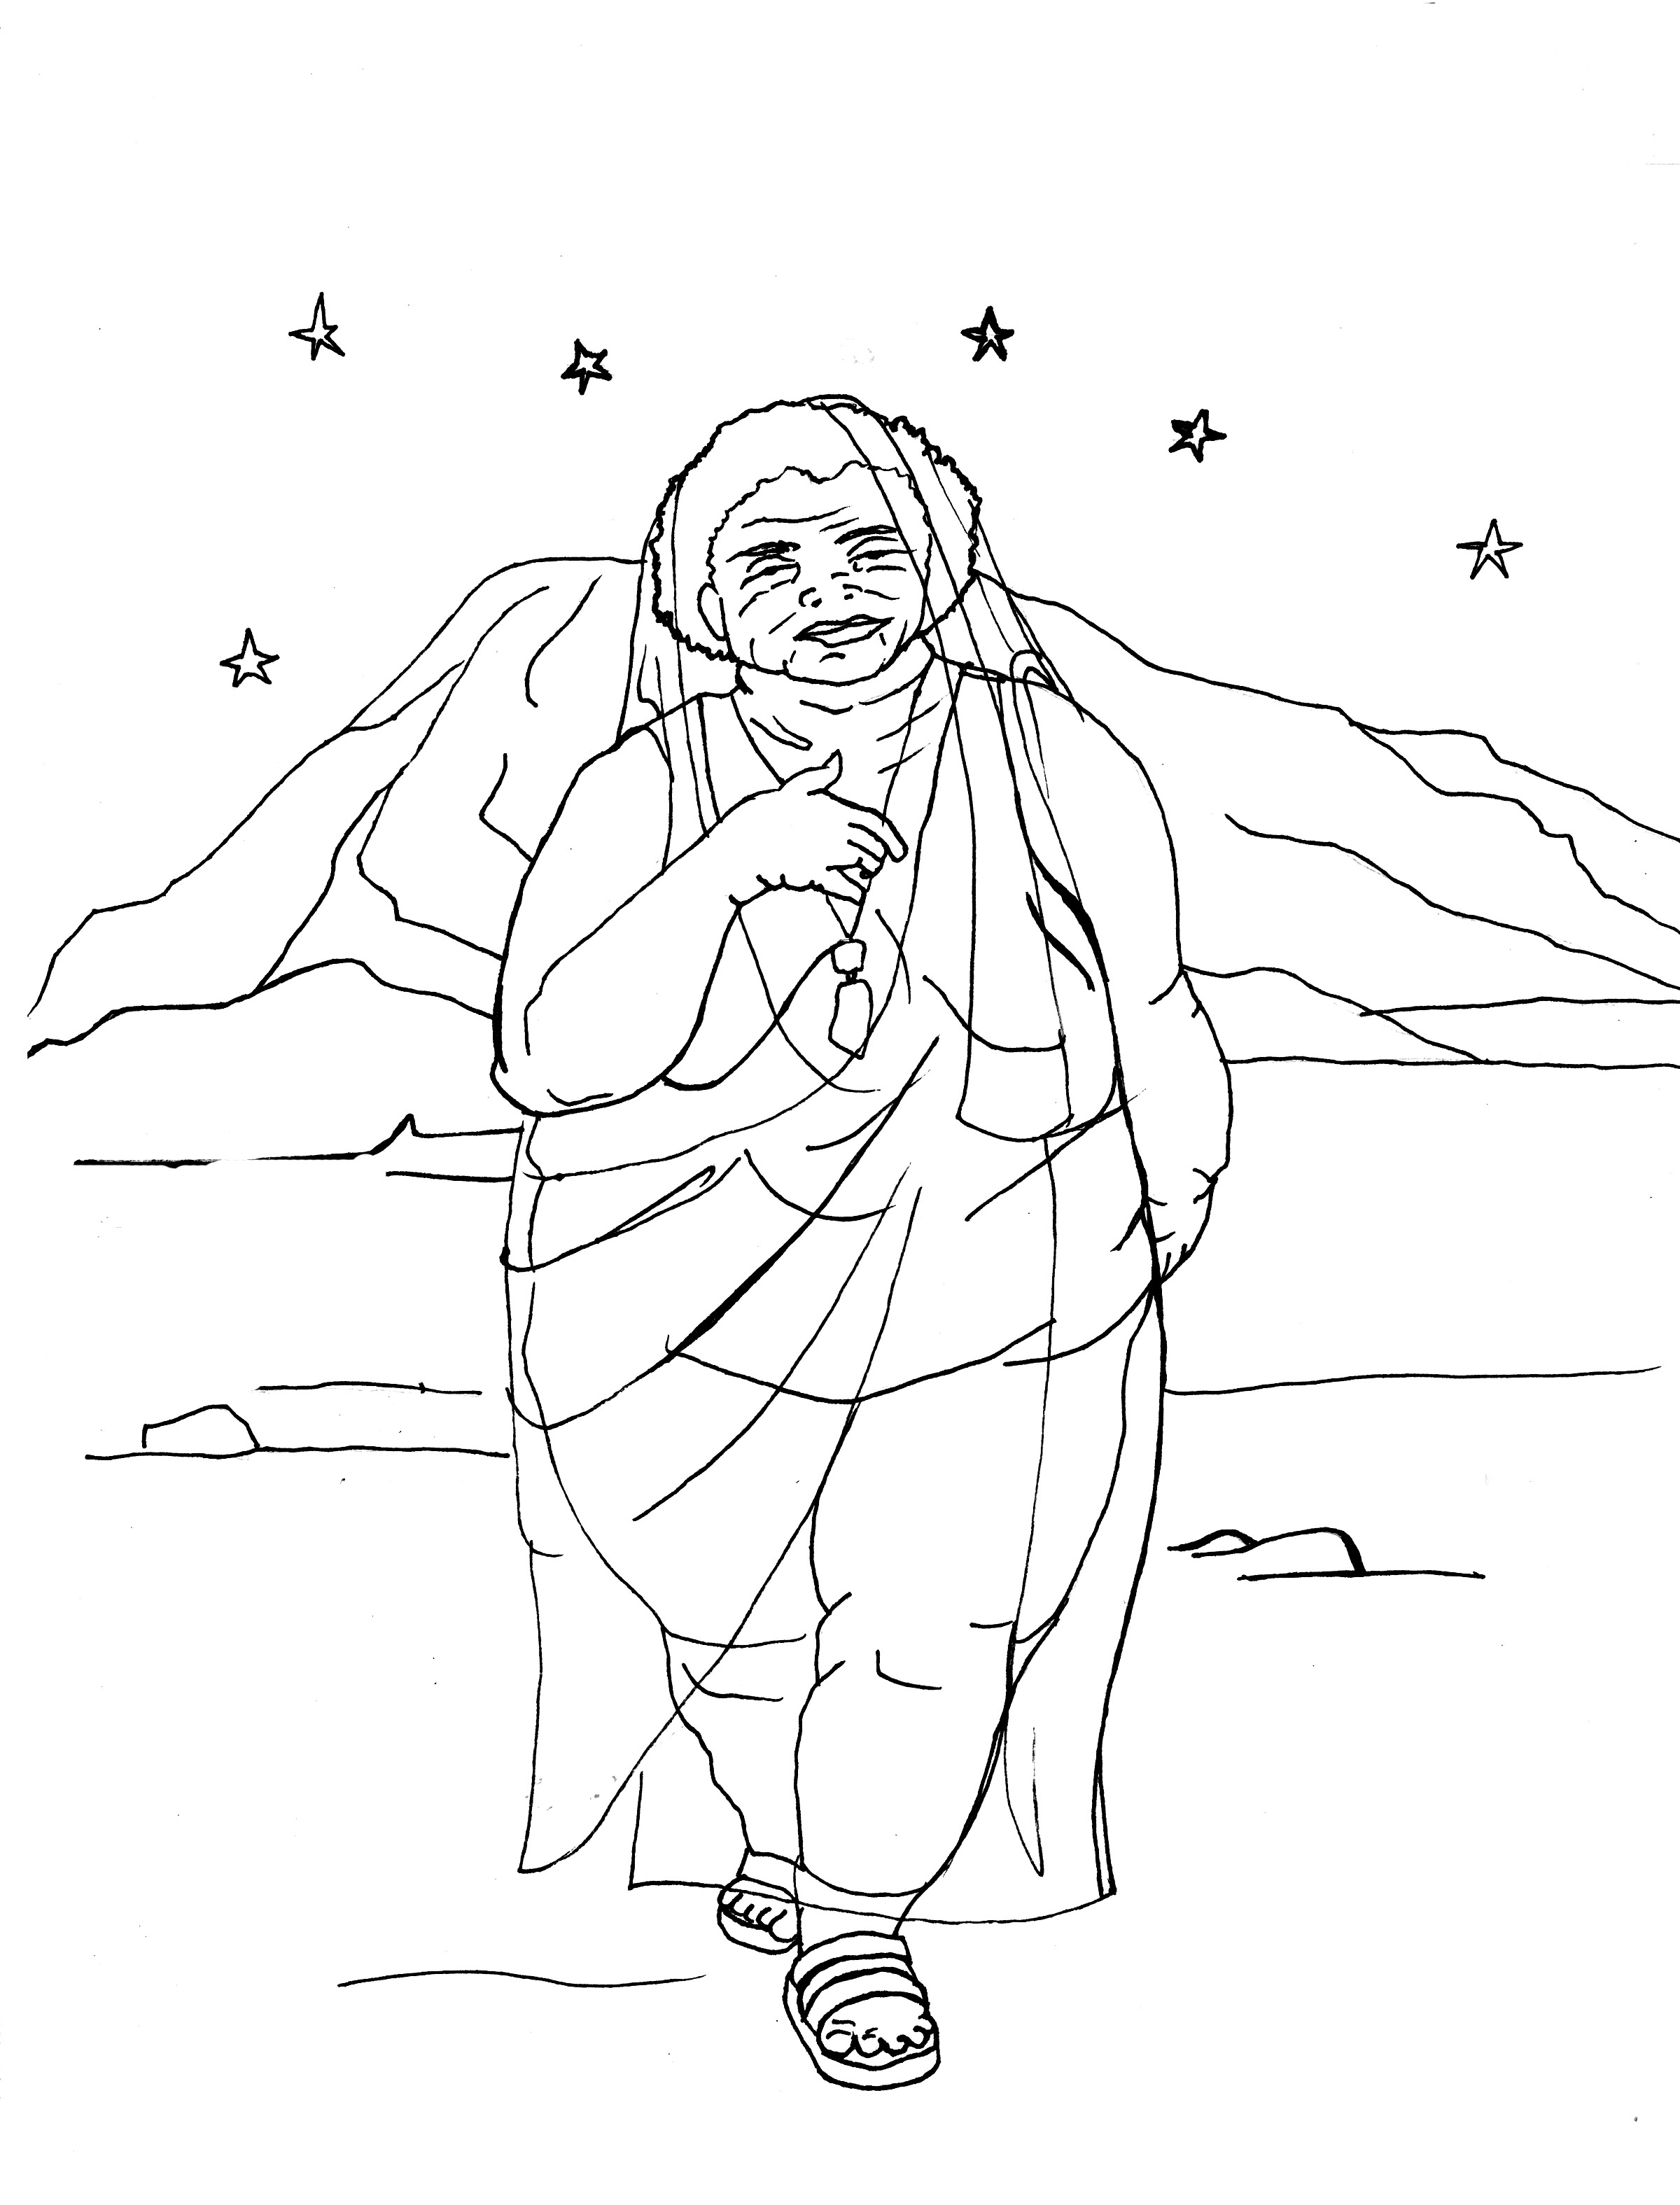 Achuliean Coloring Page.jpg